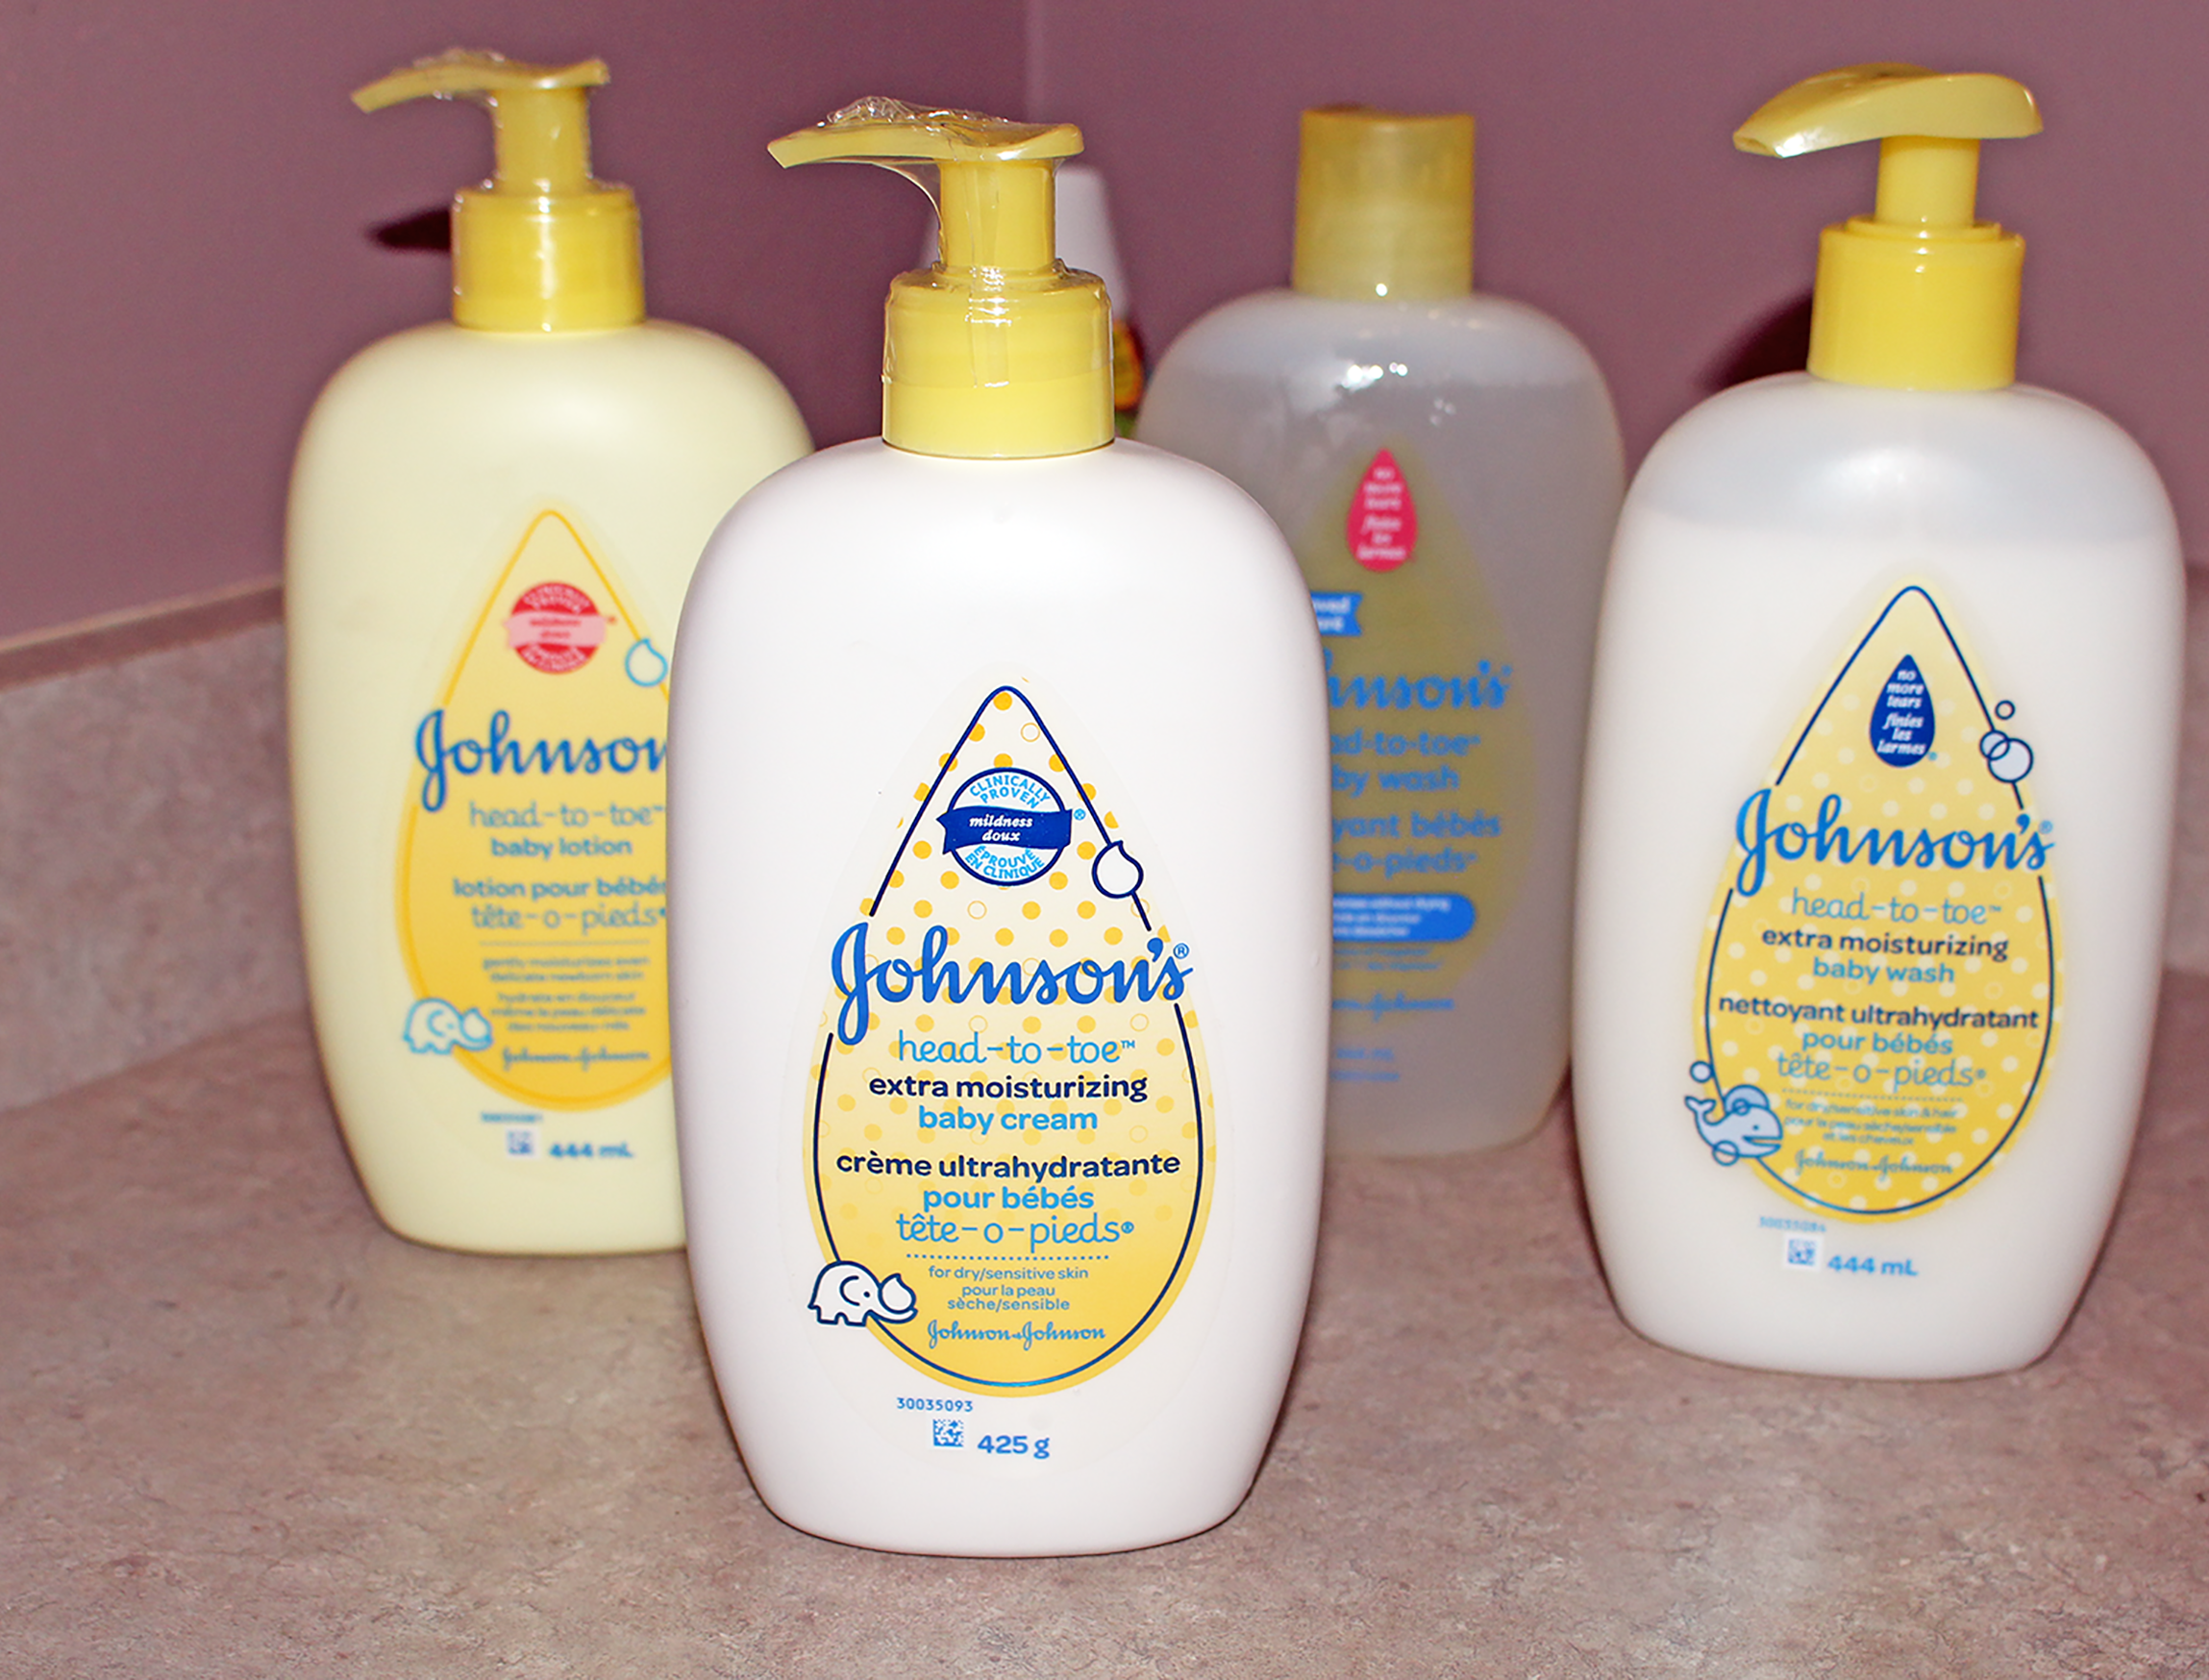 Make Bedtime Easy With JOHNSON'S HEAD-TO-TOE